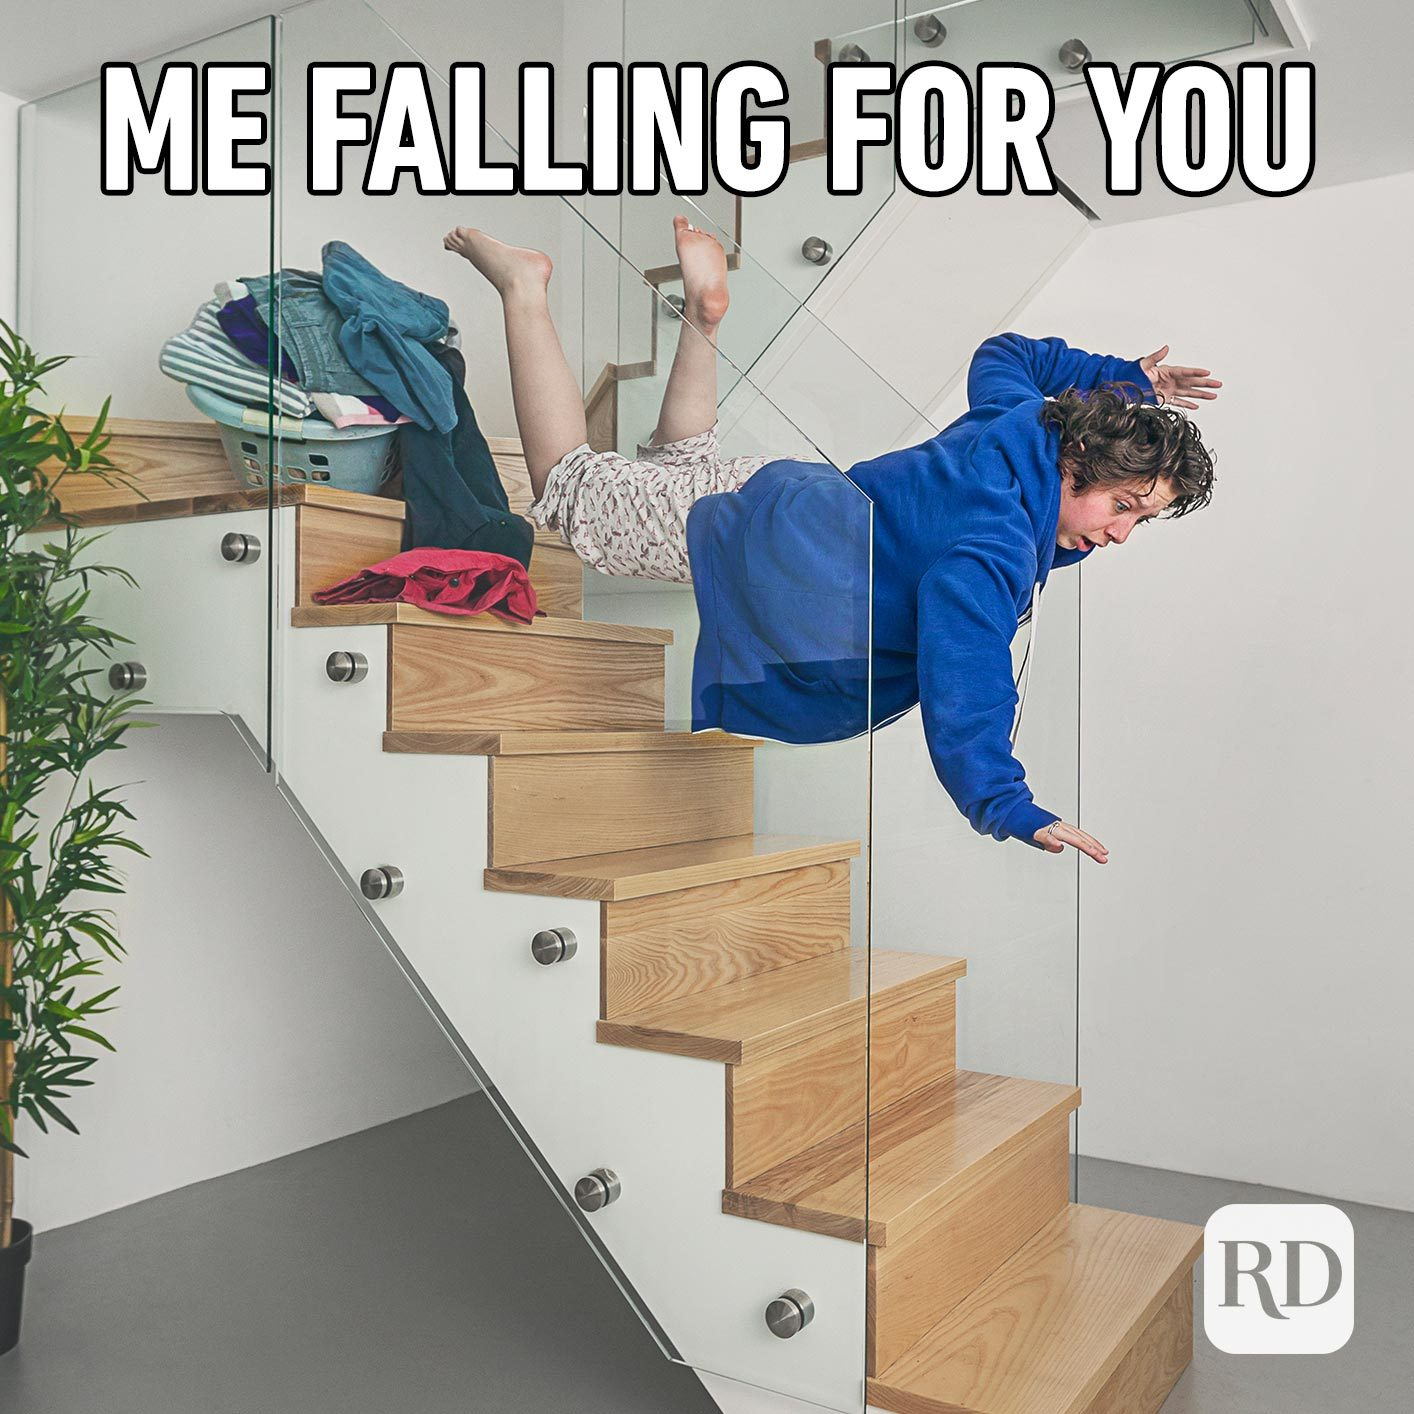 Woman falling down stairs. Meme text: Me falling for you.